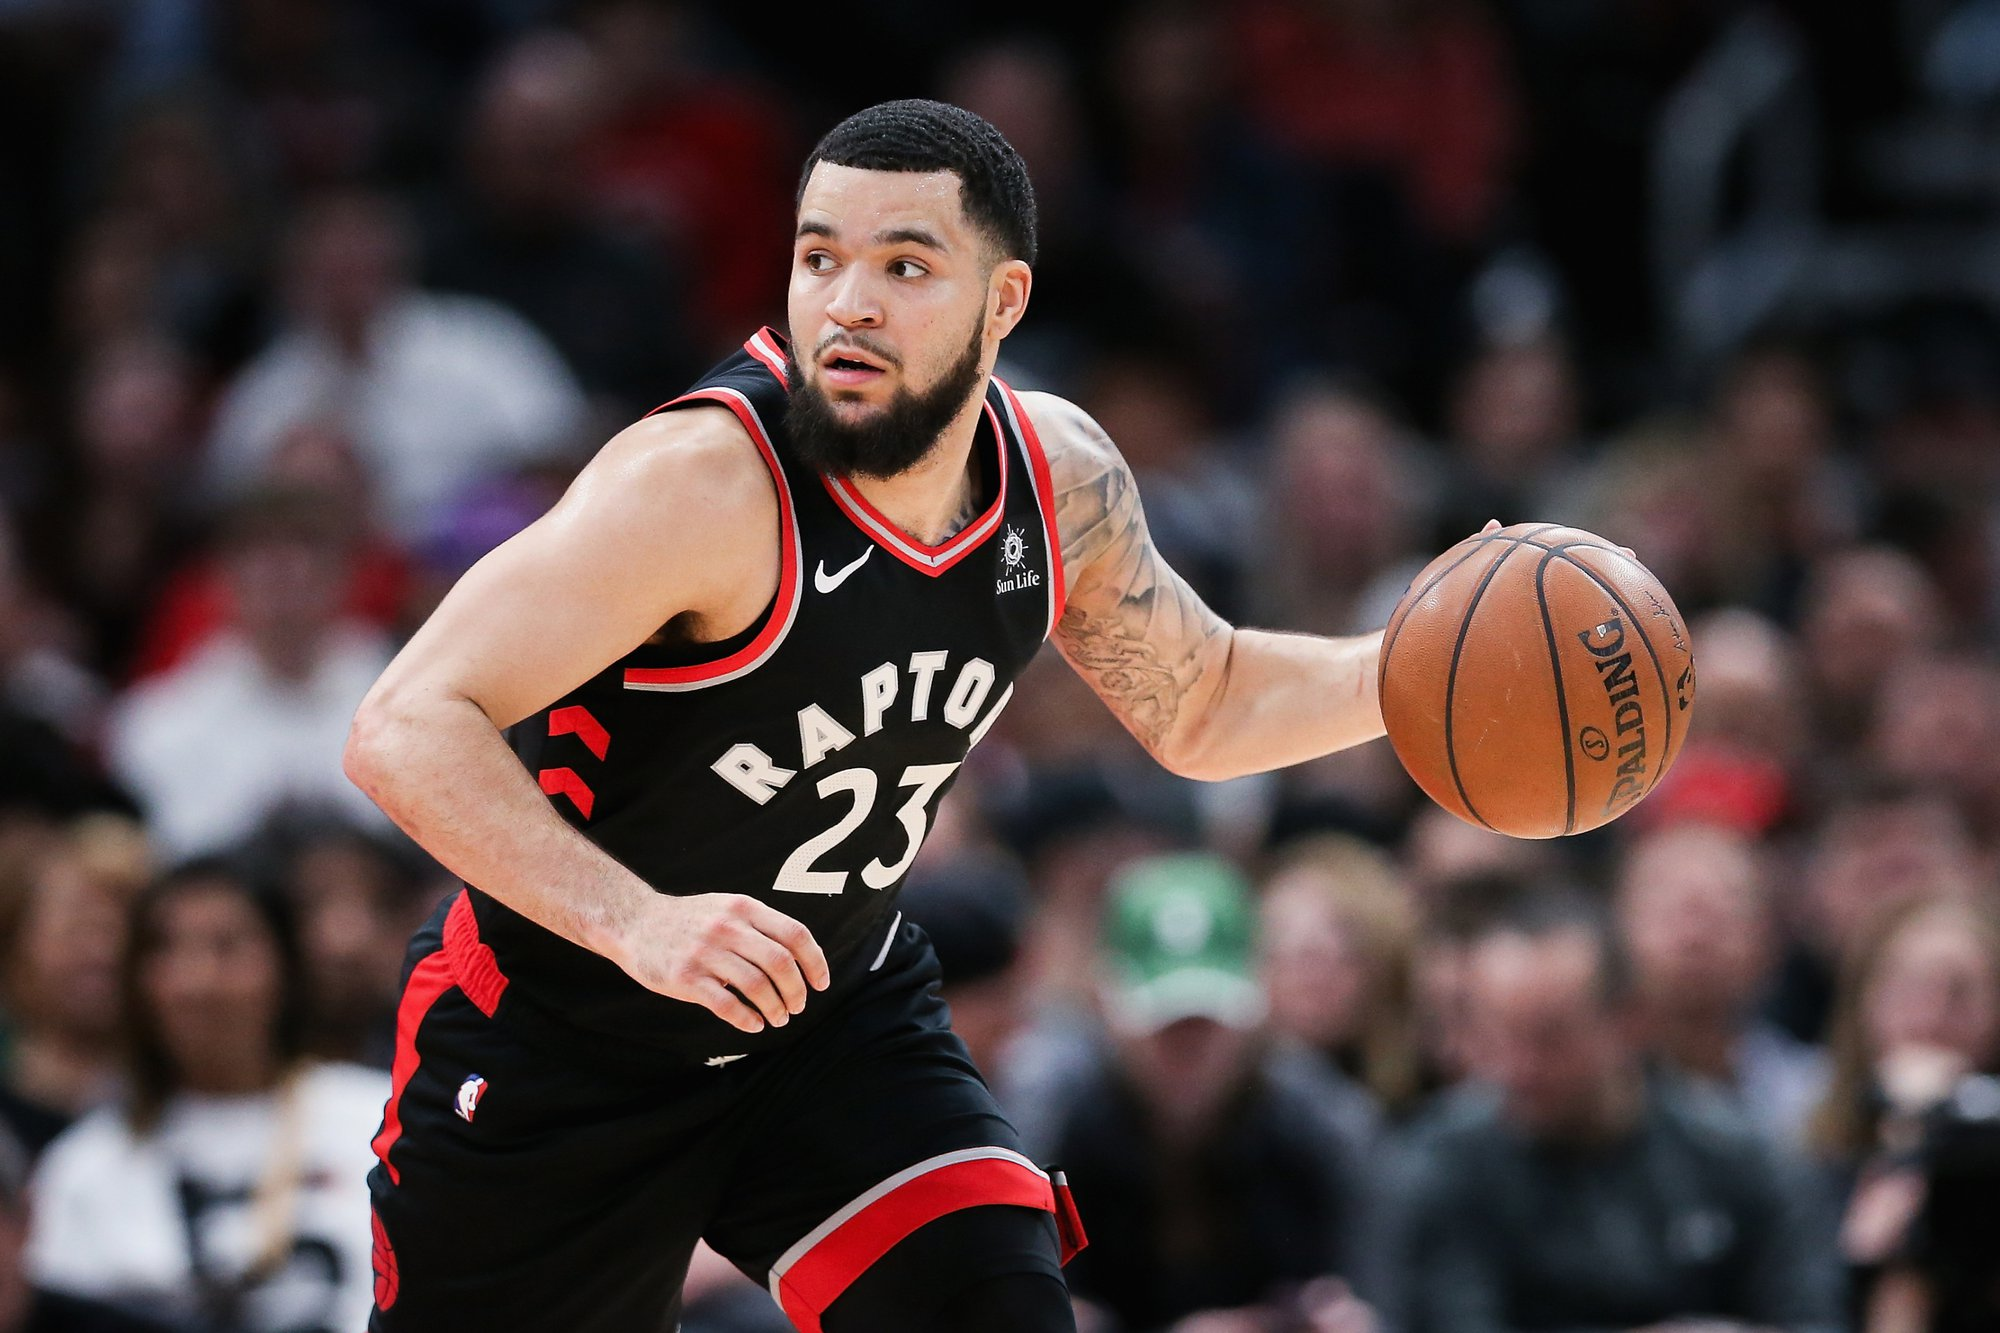 CHICAGO, ILLINOIS - MARCH 30:  Fred VanVleet #23 of the Toronto Raptors dribbles the ball in the second quarter against the Chicago Bulls at the United Center on March 30, 2019 in Chicago, Illinois. NOTE TO USER: User expressly acknowledges and agrees that, by downloading and or using this photograph, User is consenting to the terms and conditions of the Getty Images License Agreement. (Photo by Dylan Buell/Getty Images)